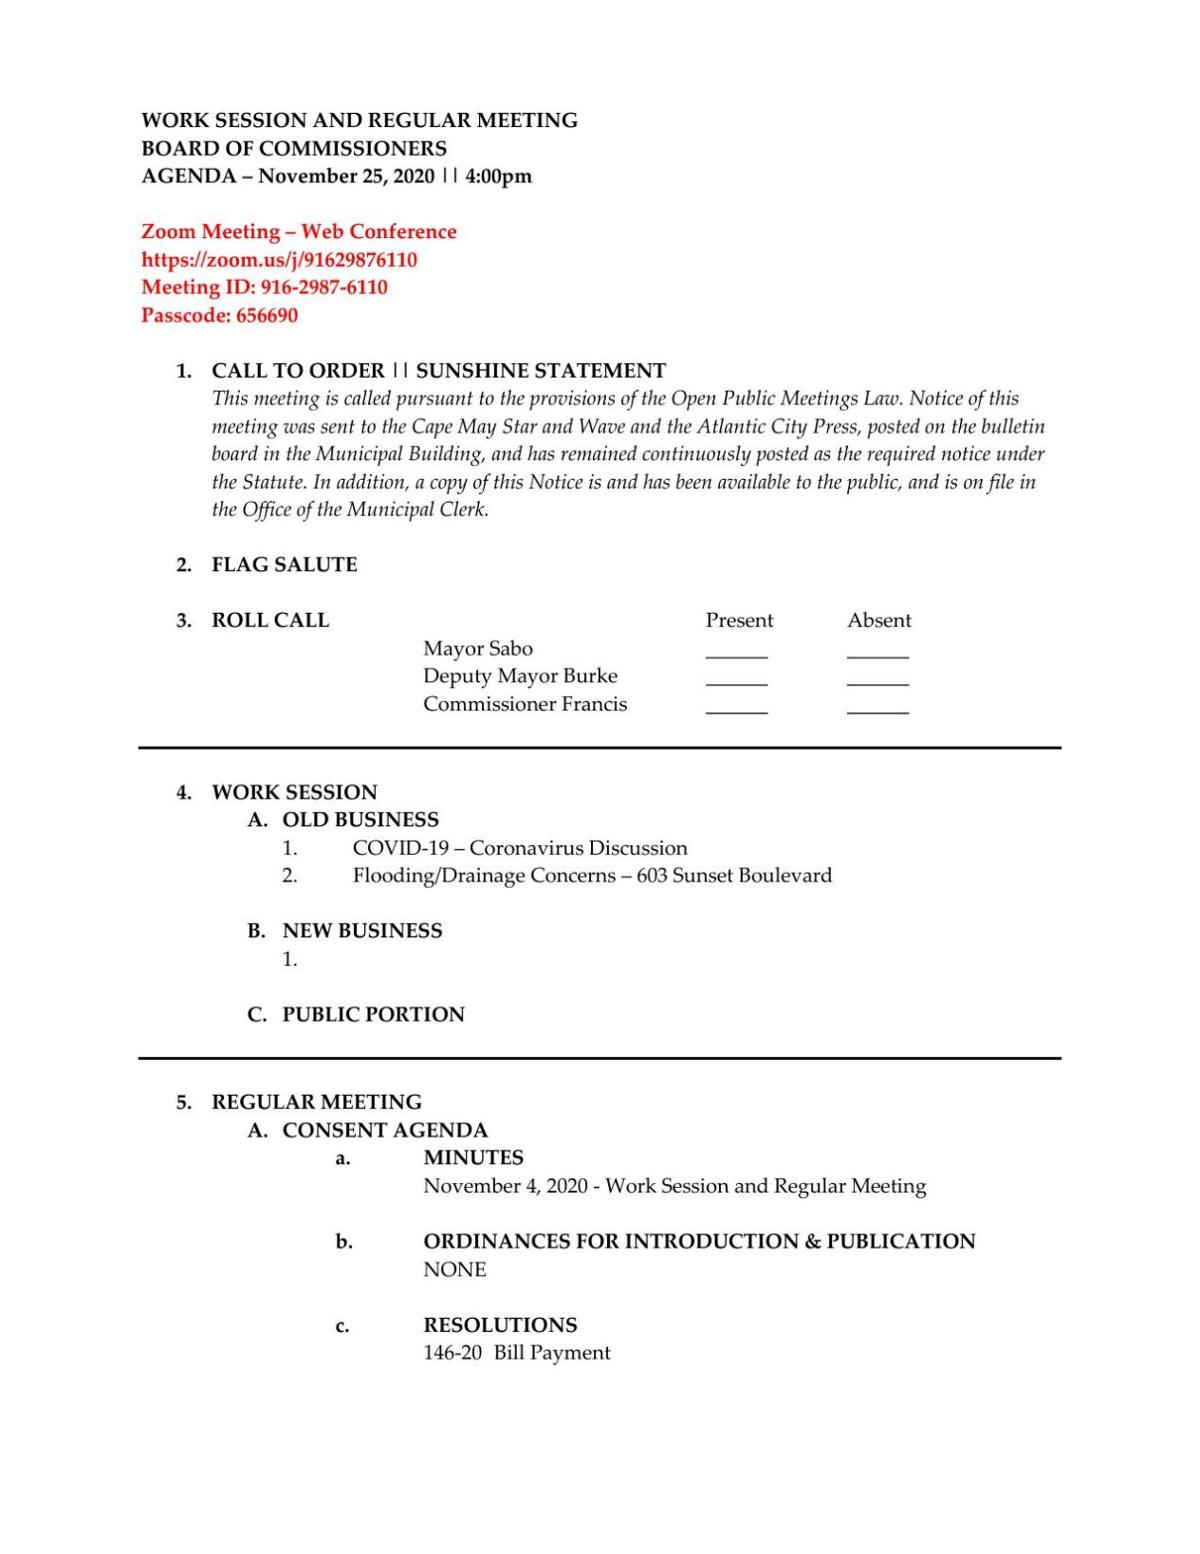 West Cape May Commissioners Meeting Agenda Nov. 25, 2020